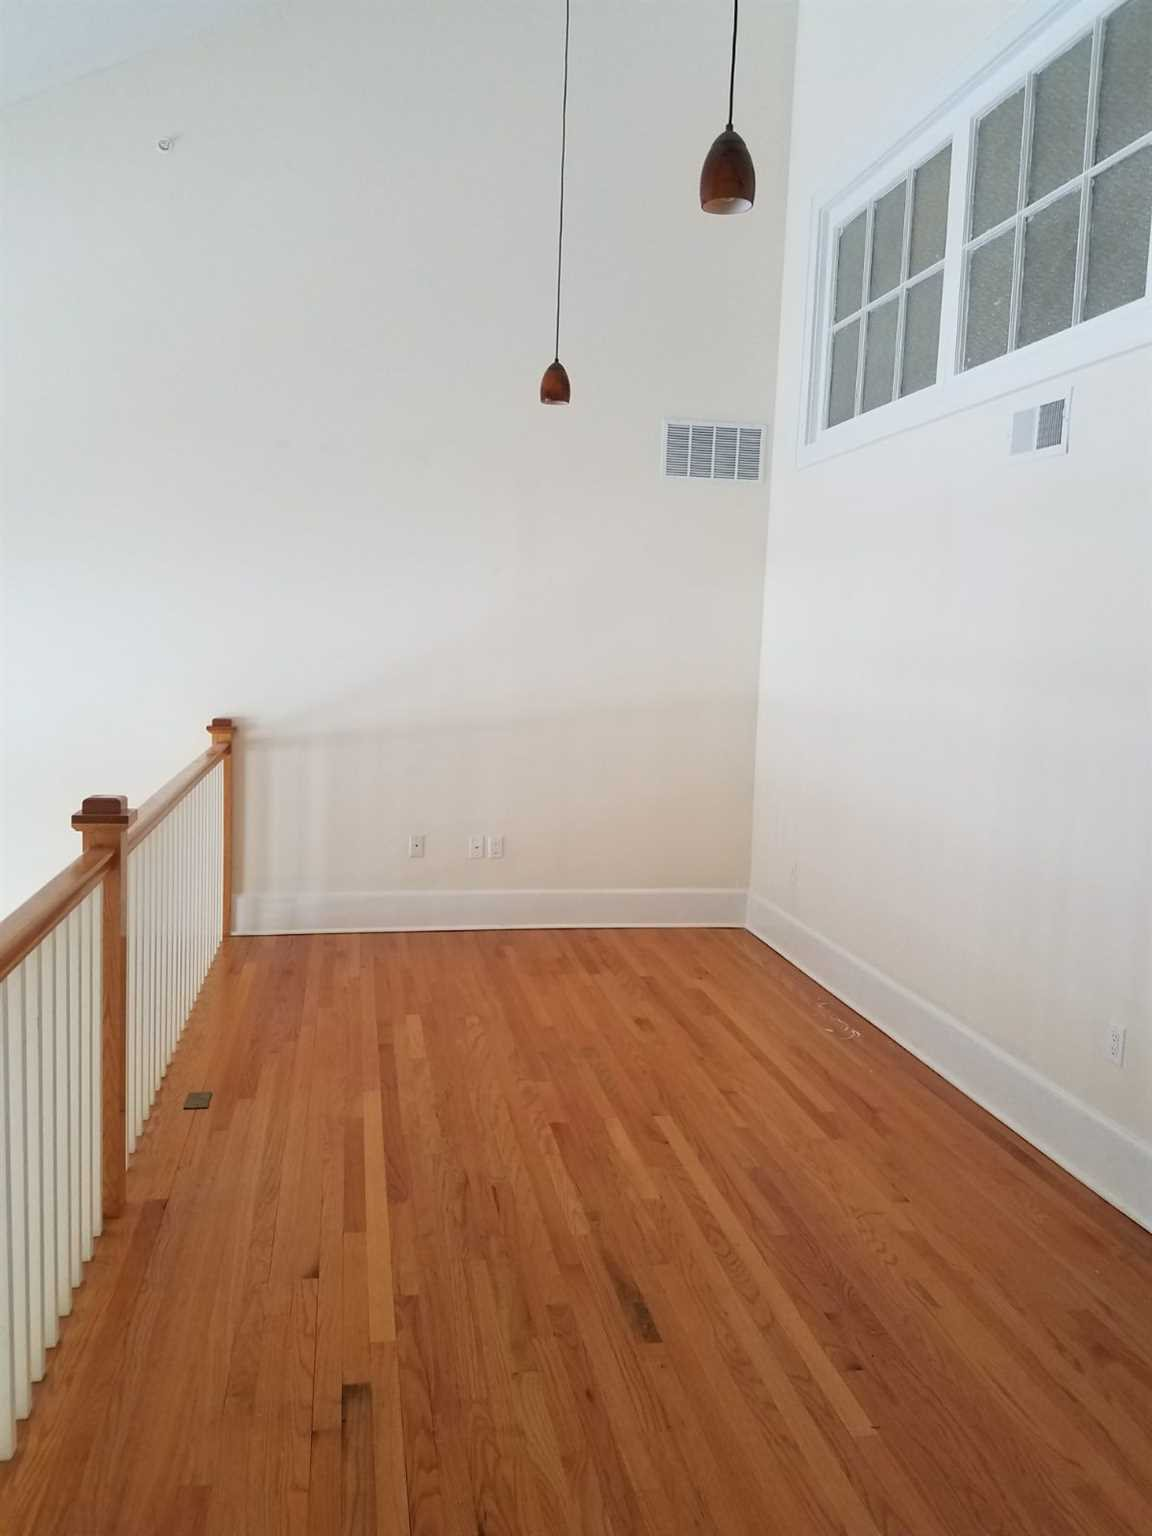 Additional photo for property listing at 6 BENNETT COMMON WAY 6 BENNETT COMMON WAY Millbrook, New York 12545 United States